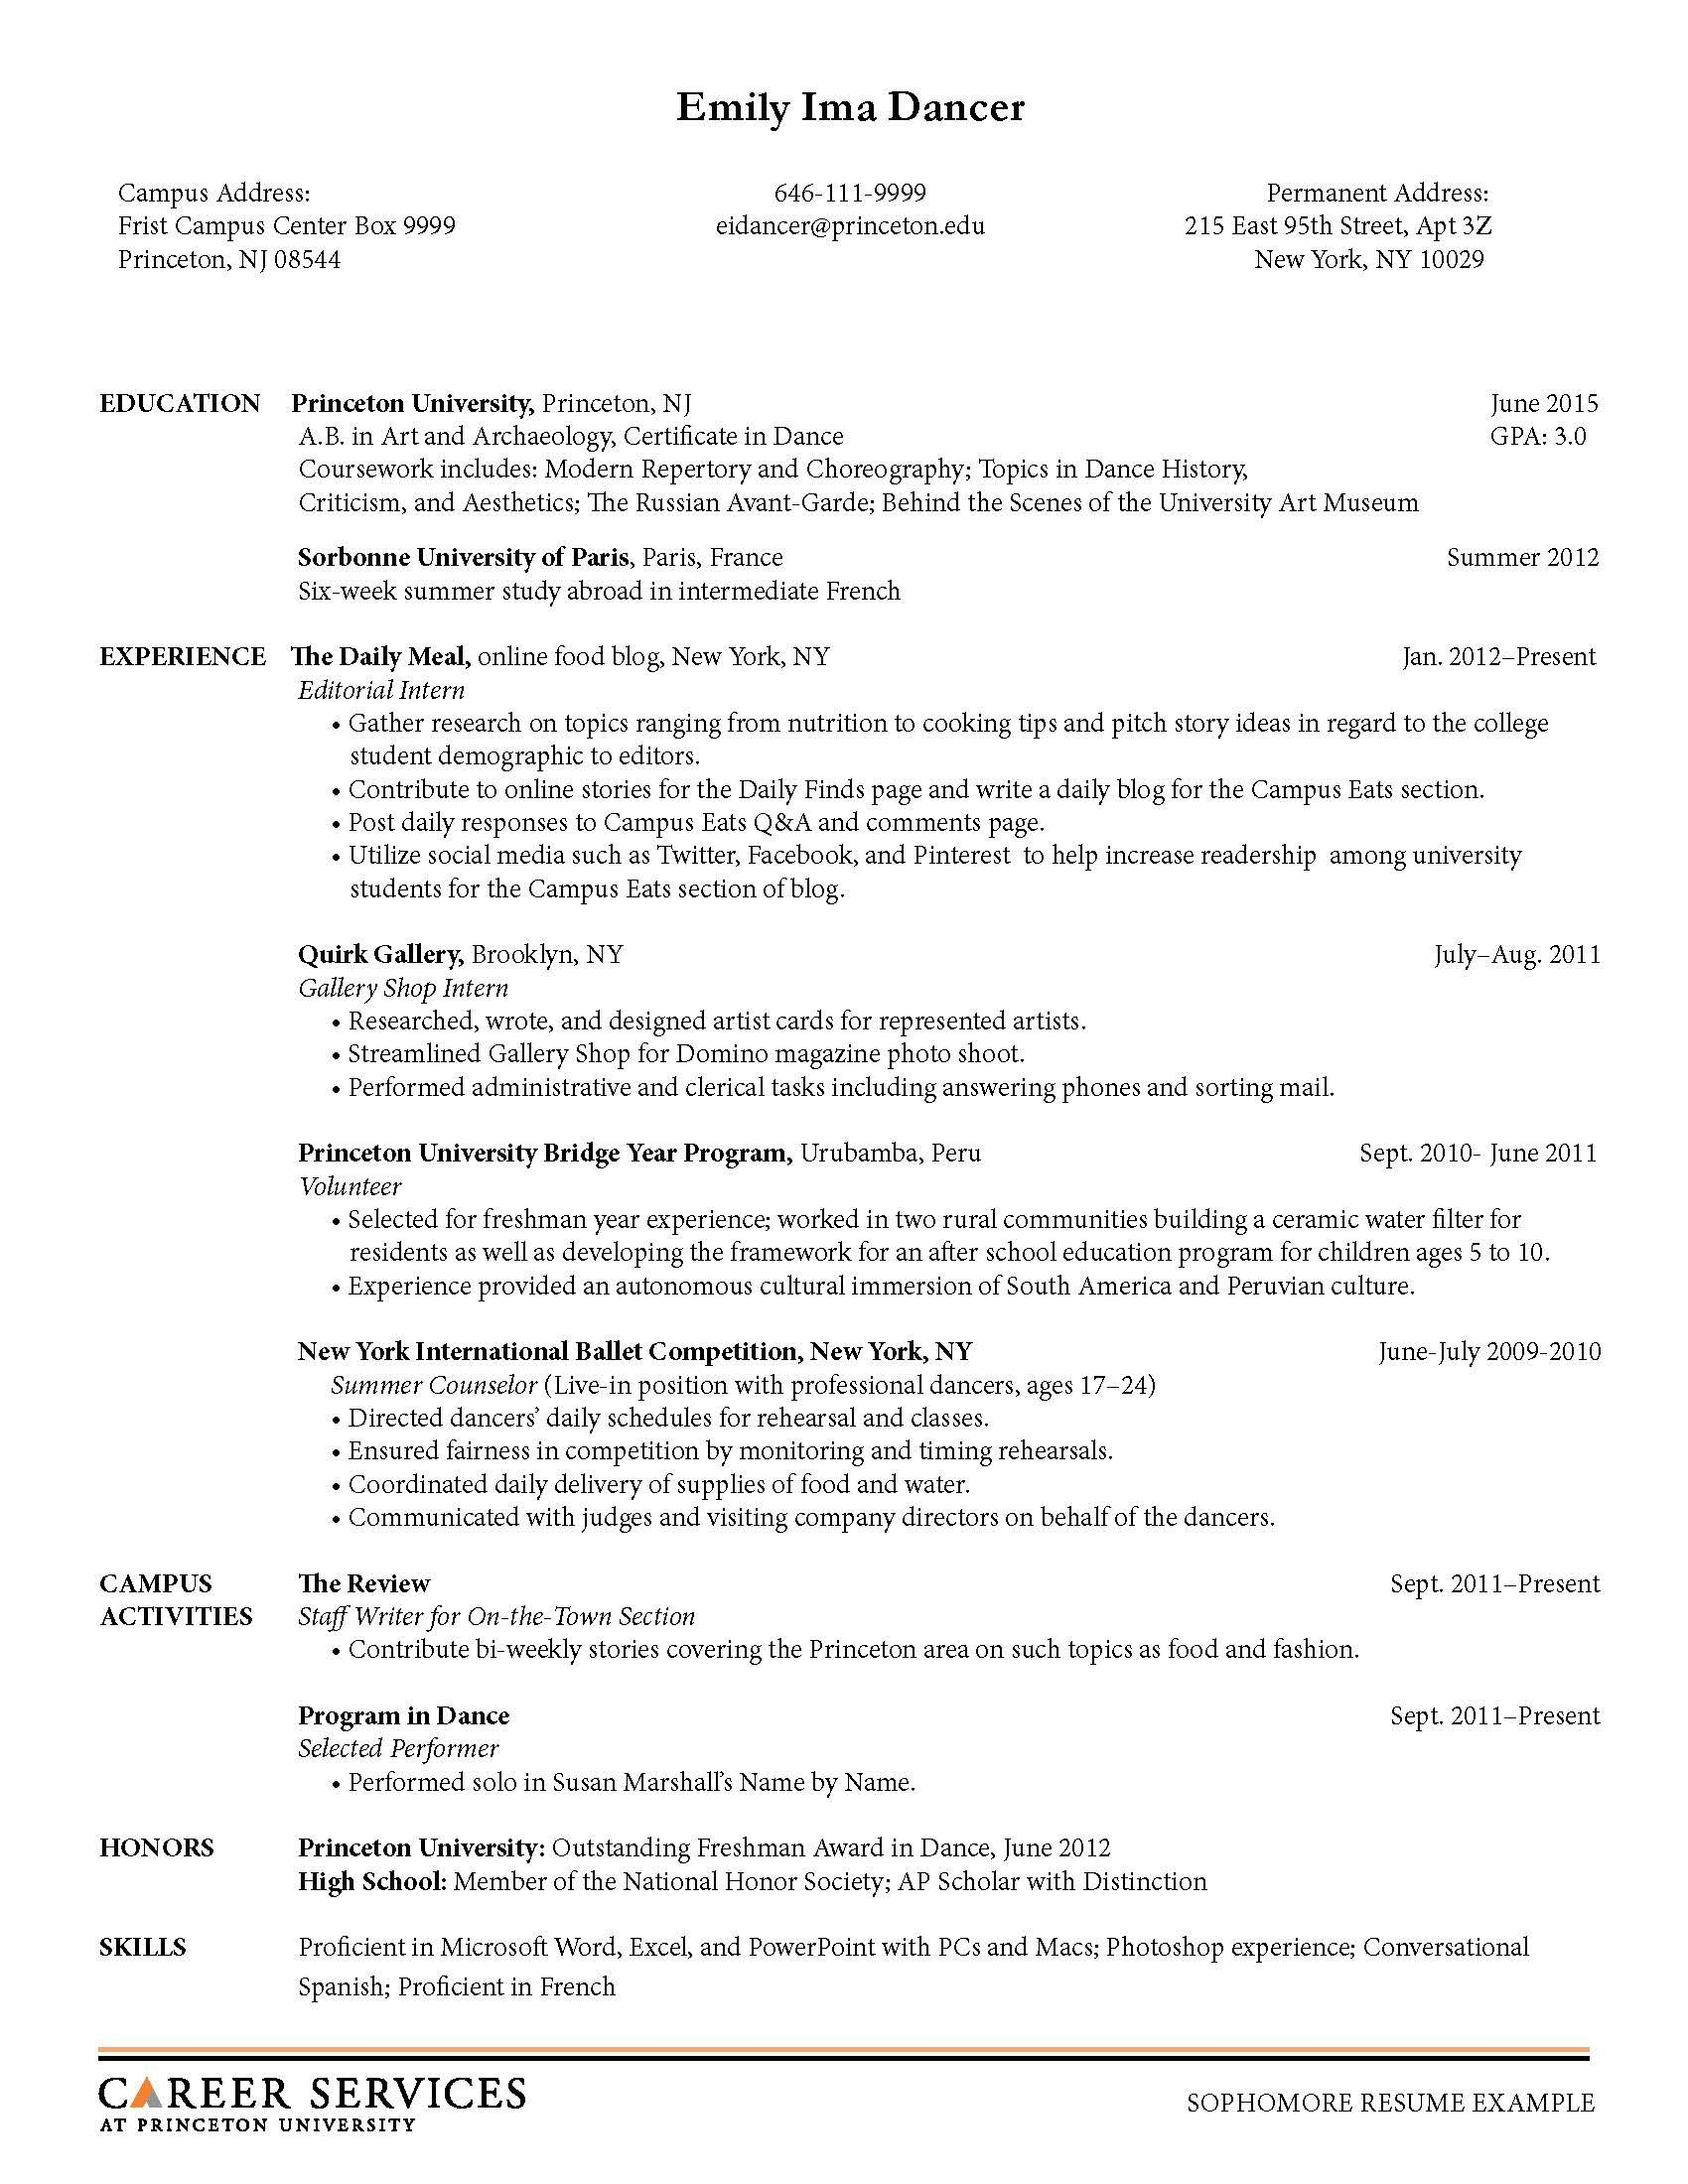 Picnictoimpeachus  Picturesque Sample Resume Resume And Career On Pinterest With Great First Time Resume Templates Besides Resume For Correctional Officer Furthermore Welder Resume Examples With Delightful Volunteering Resume Also Construction Project Manager Resume Sample In Addition Worship Pastor Resume And Project Manager Resume Summary As Well As Job Fair Resume Additionally Cool Resume Template From Pinterestcom With Picnictoimpeachus  Great Sample Resume Resume And Career On Pinterest With Delightful First Time Resume Templates Besides Resume For Correctional Officer Furthermore Welder Resume Examples And Picturesque Volunteering Resume Also Construction Project Manager Resume Sample In Addition Worship Pastor Resume From Pinterestcom